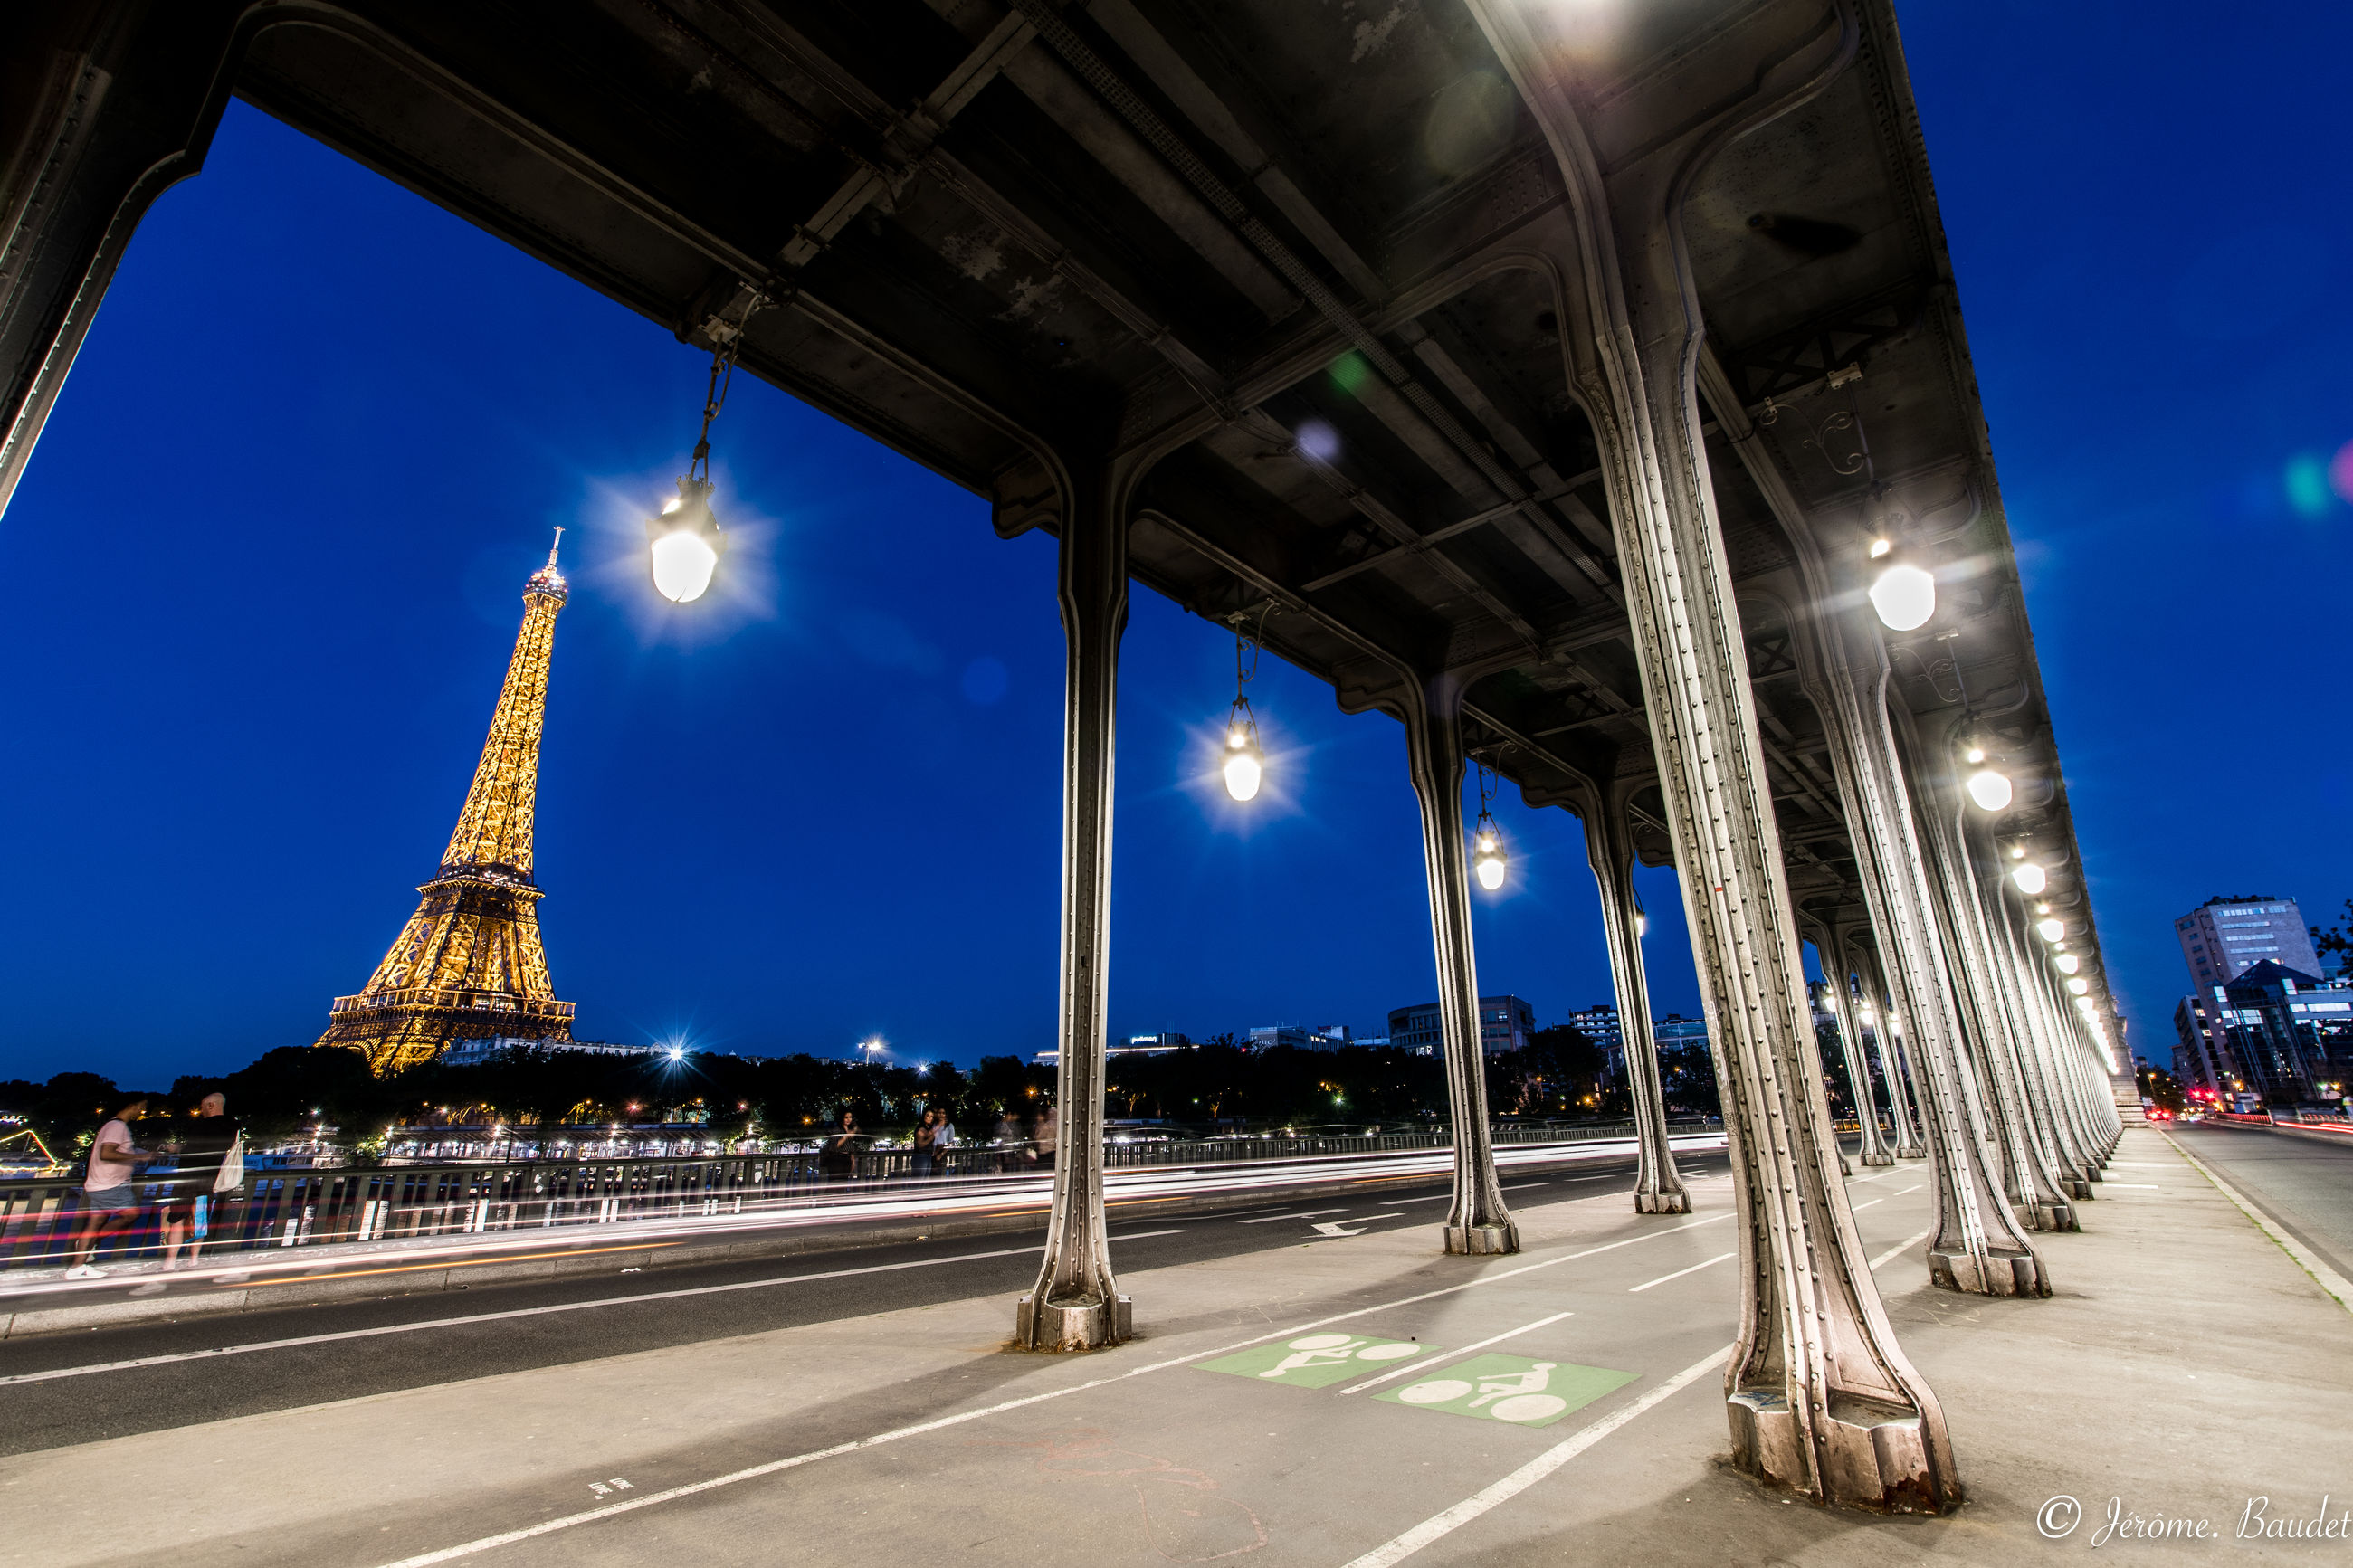 architecture, illuminated, transportation, built structure, night, road, city, street, sky, street light, travel destinations, bridge, no people, bridge - man made structure, connection, nature, direction, lighting equipment, the way forward, outdoors, architectural column